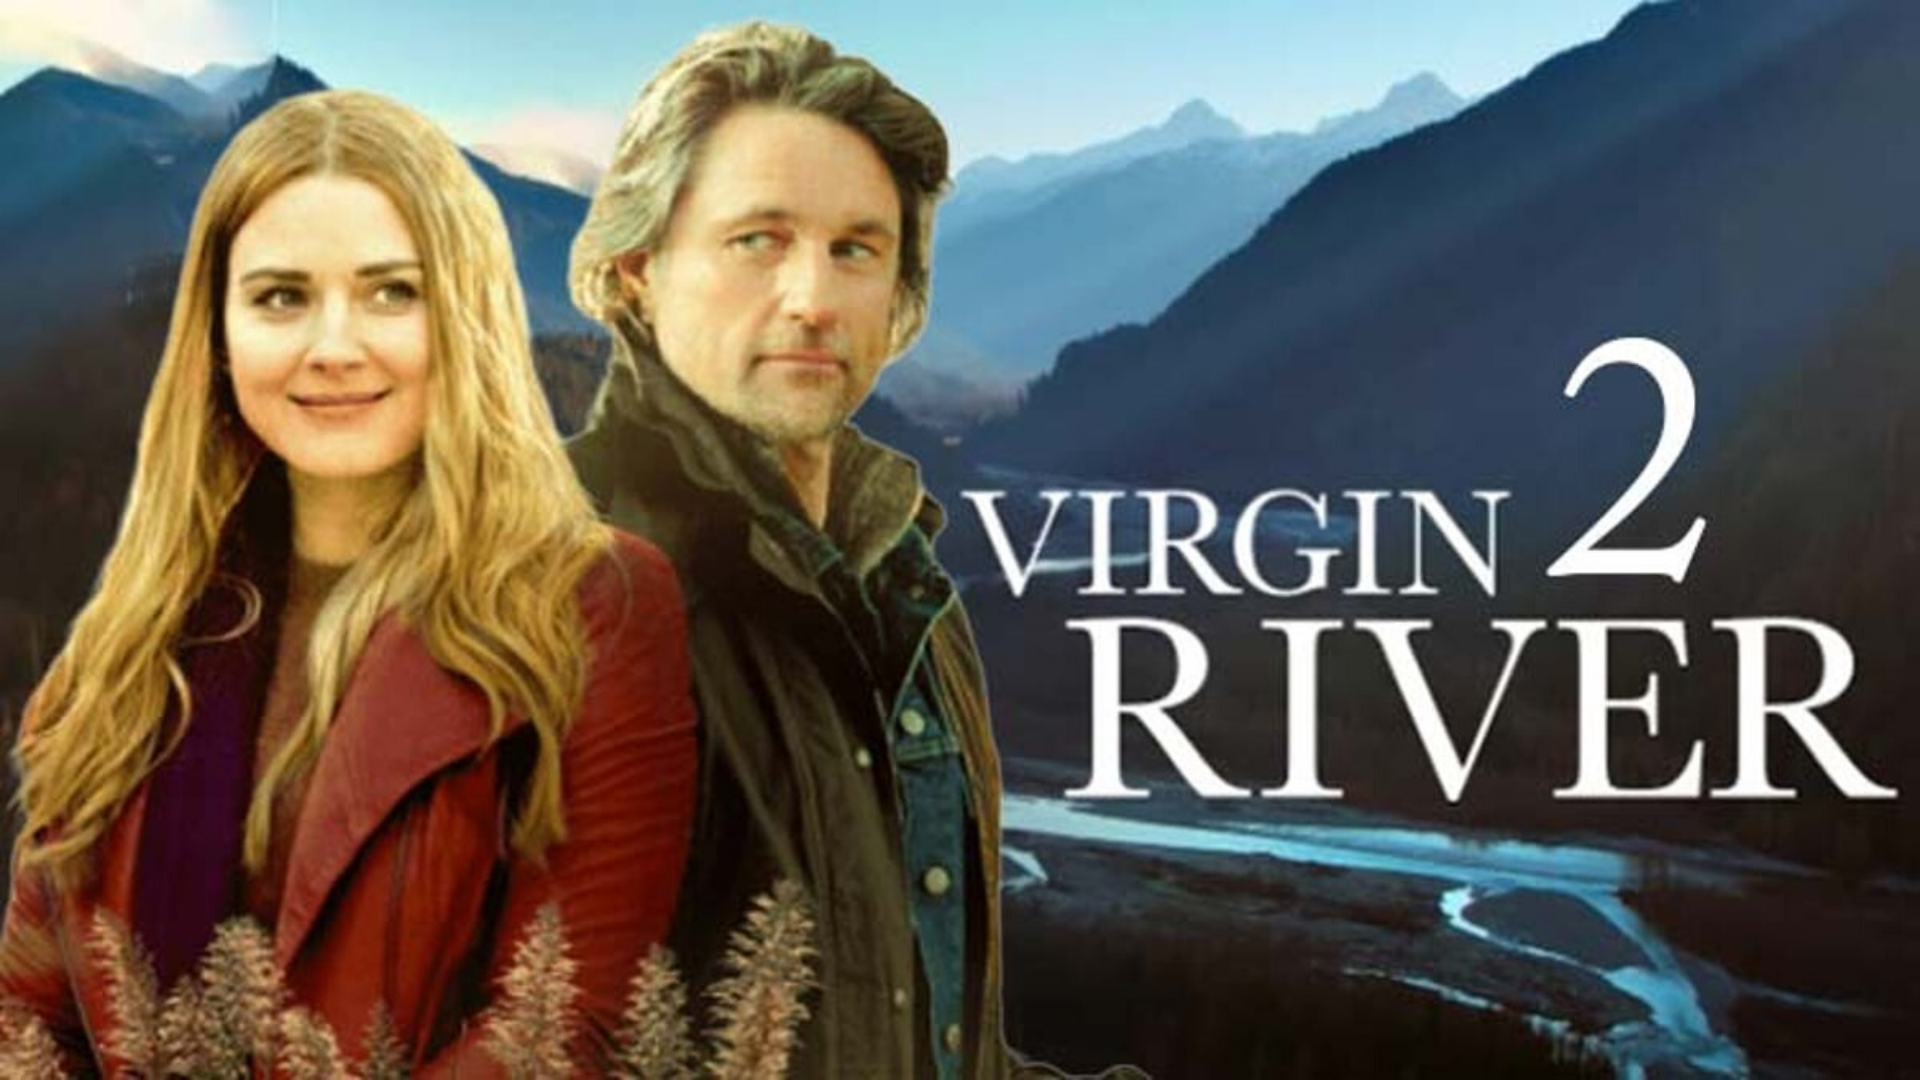 """Virgin River"" Season 2, When Will It Come? What Can Be Expected From It?"